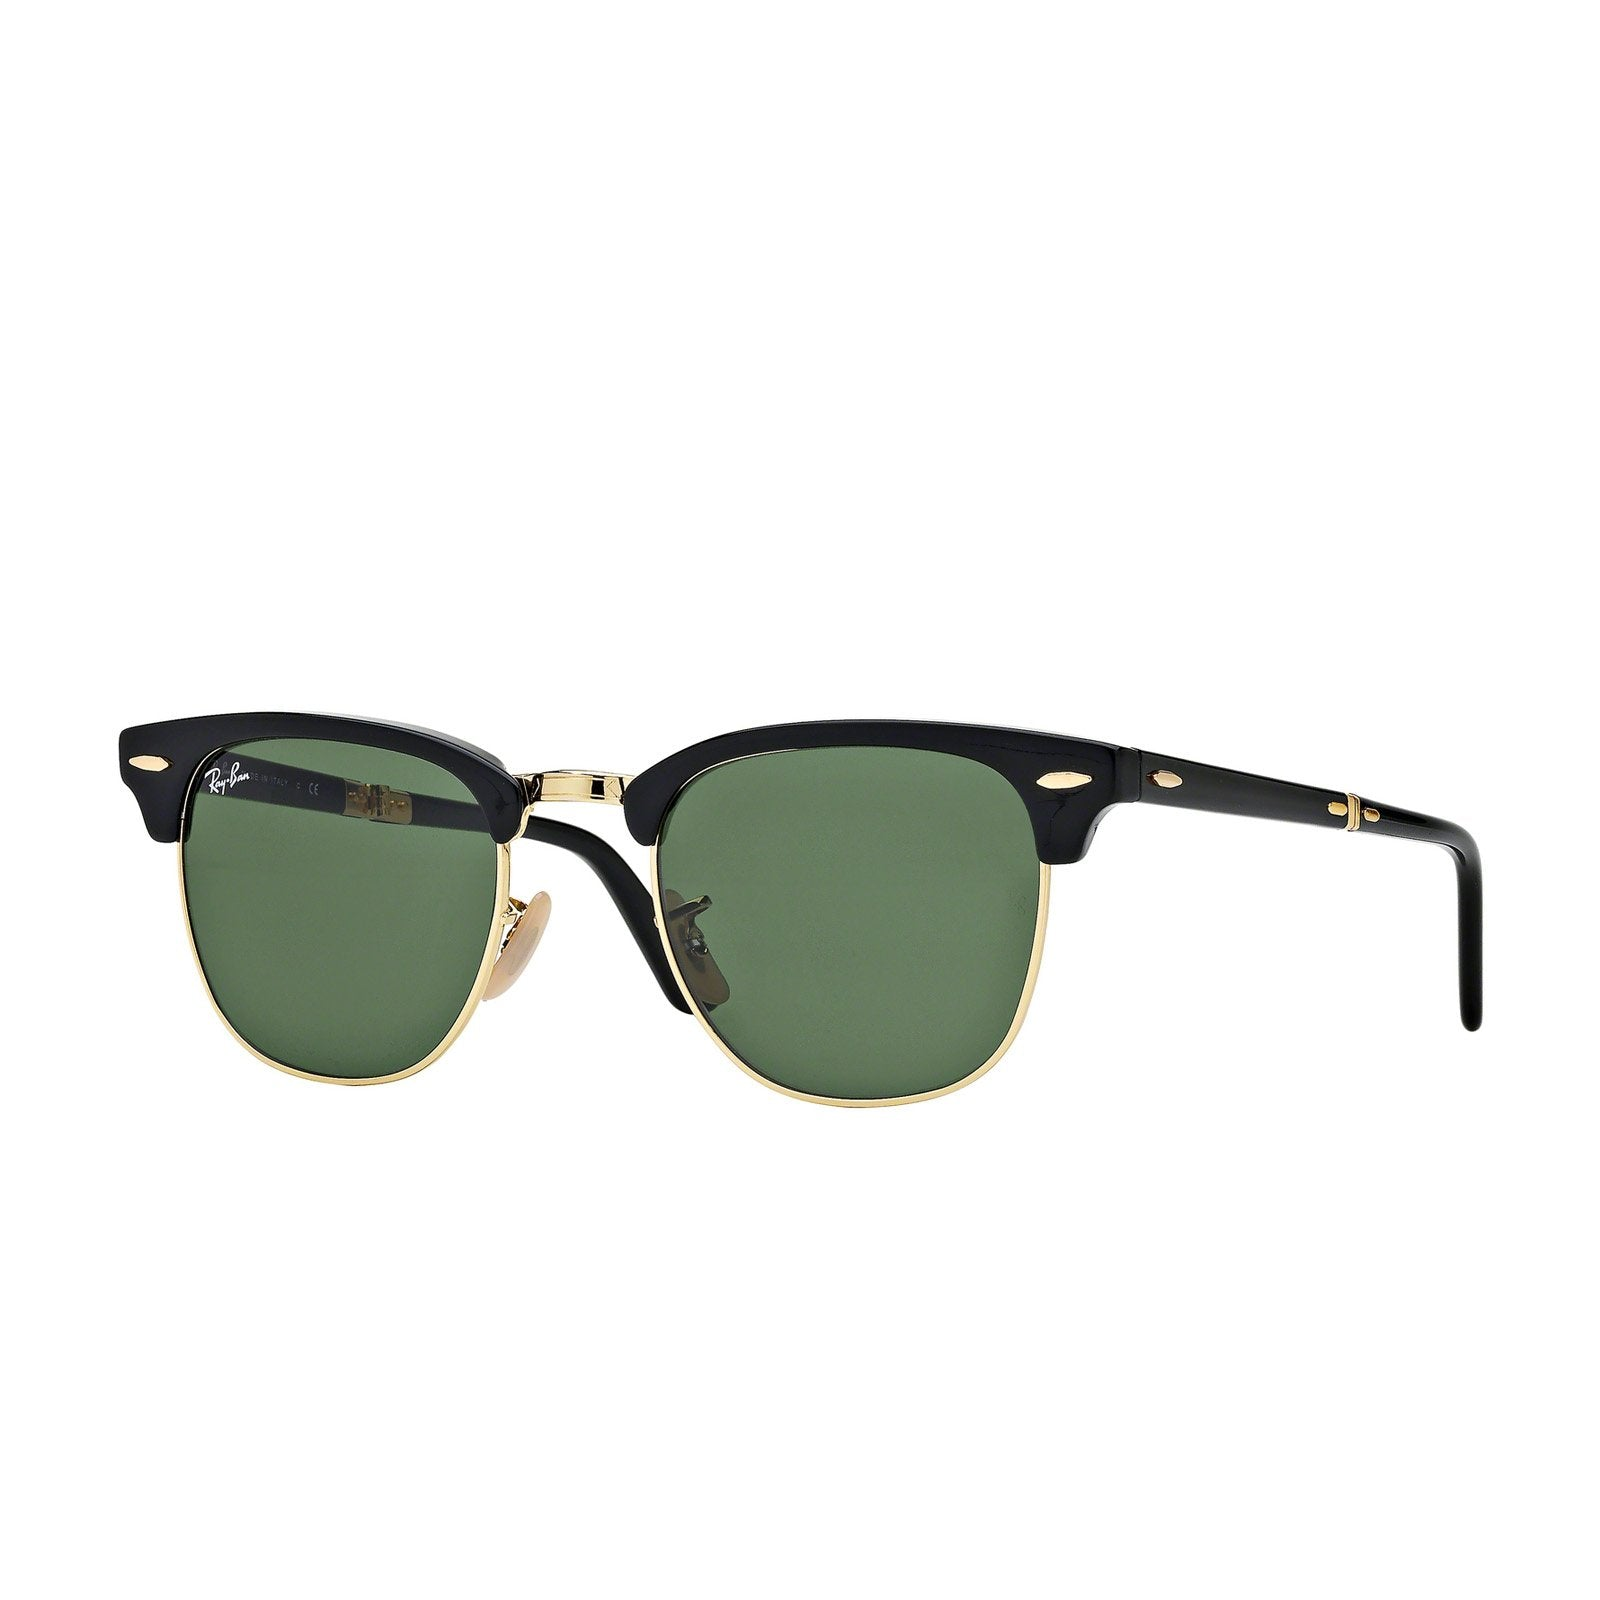 Ray-Ban RB2176 901 Sunglasses